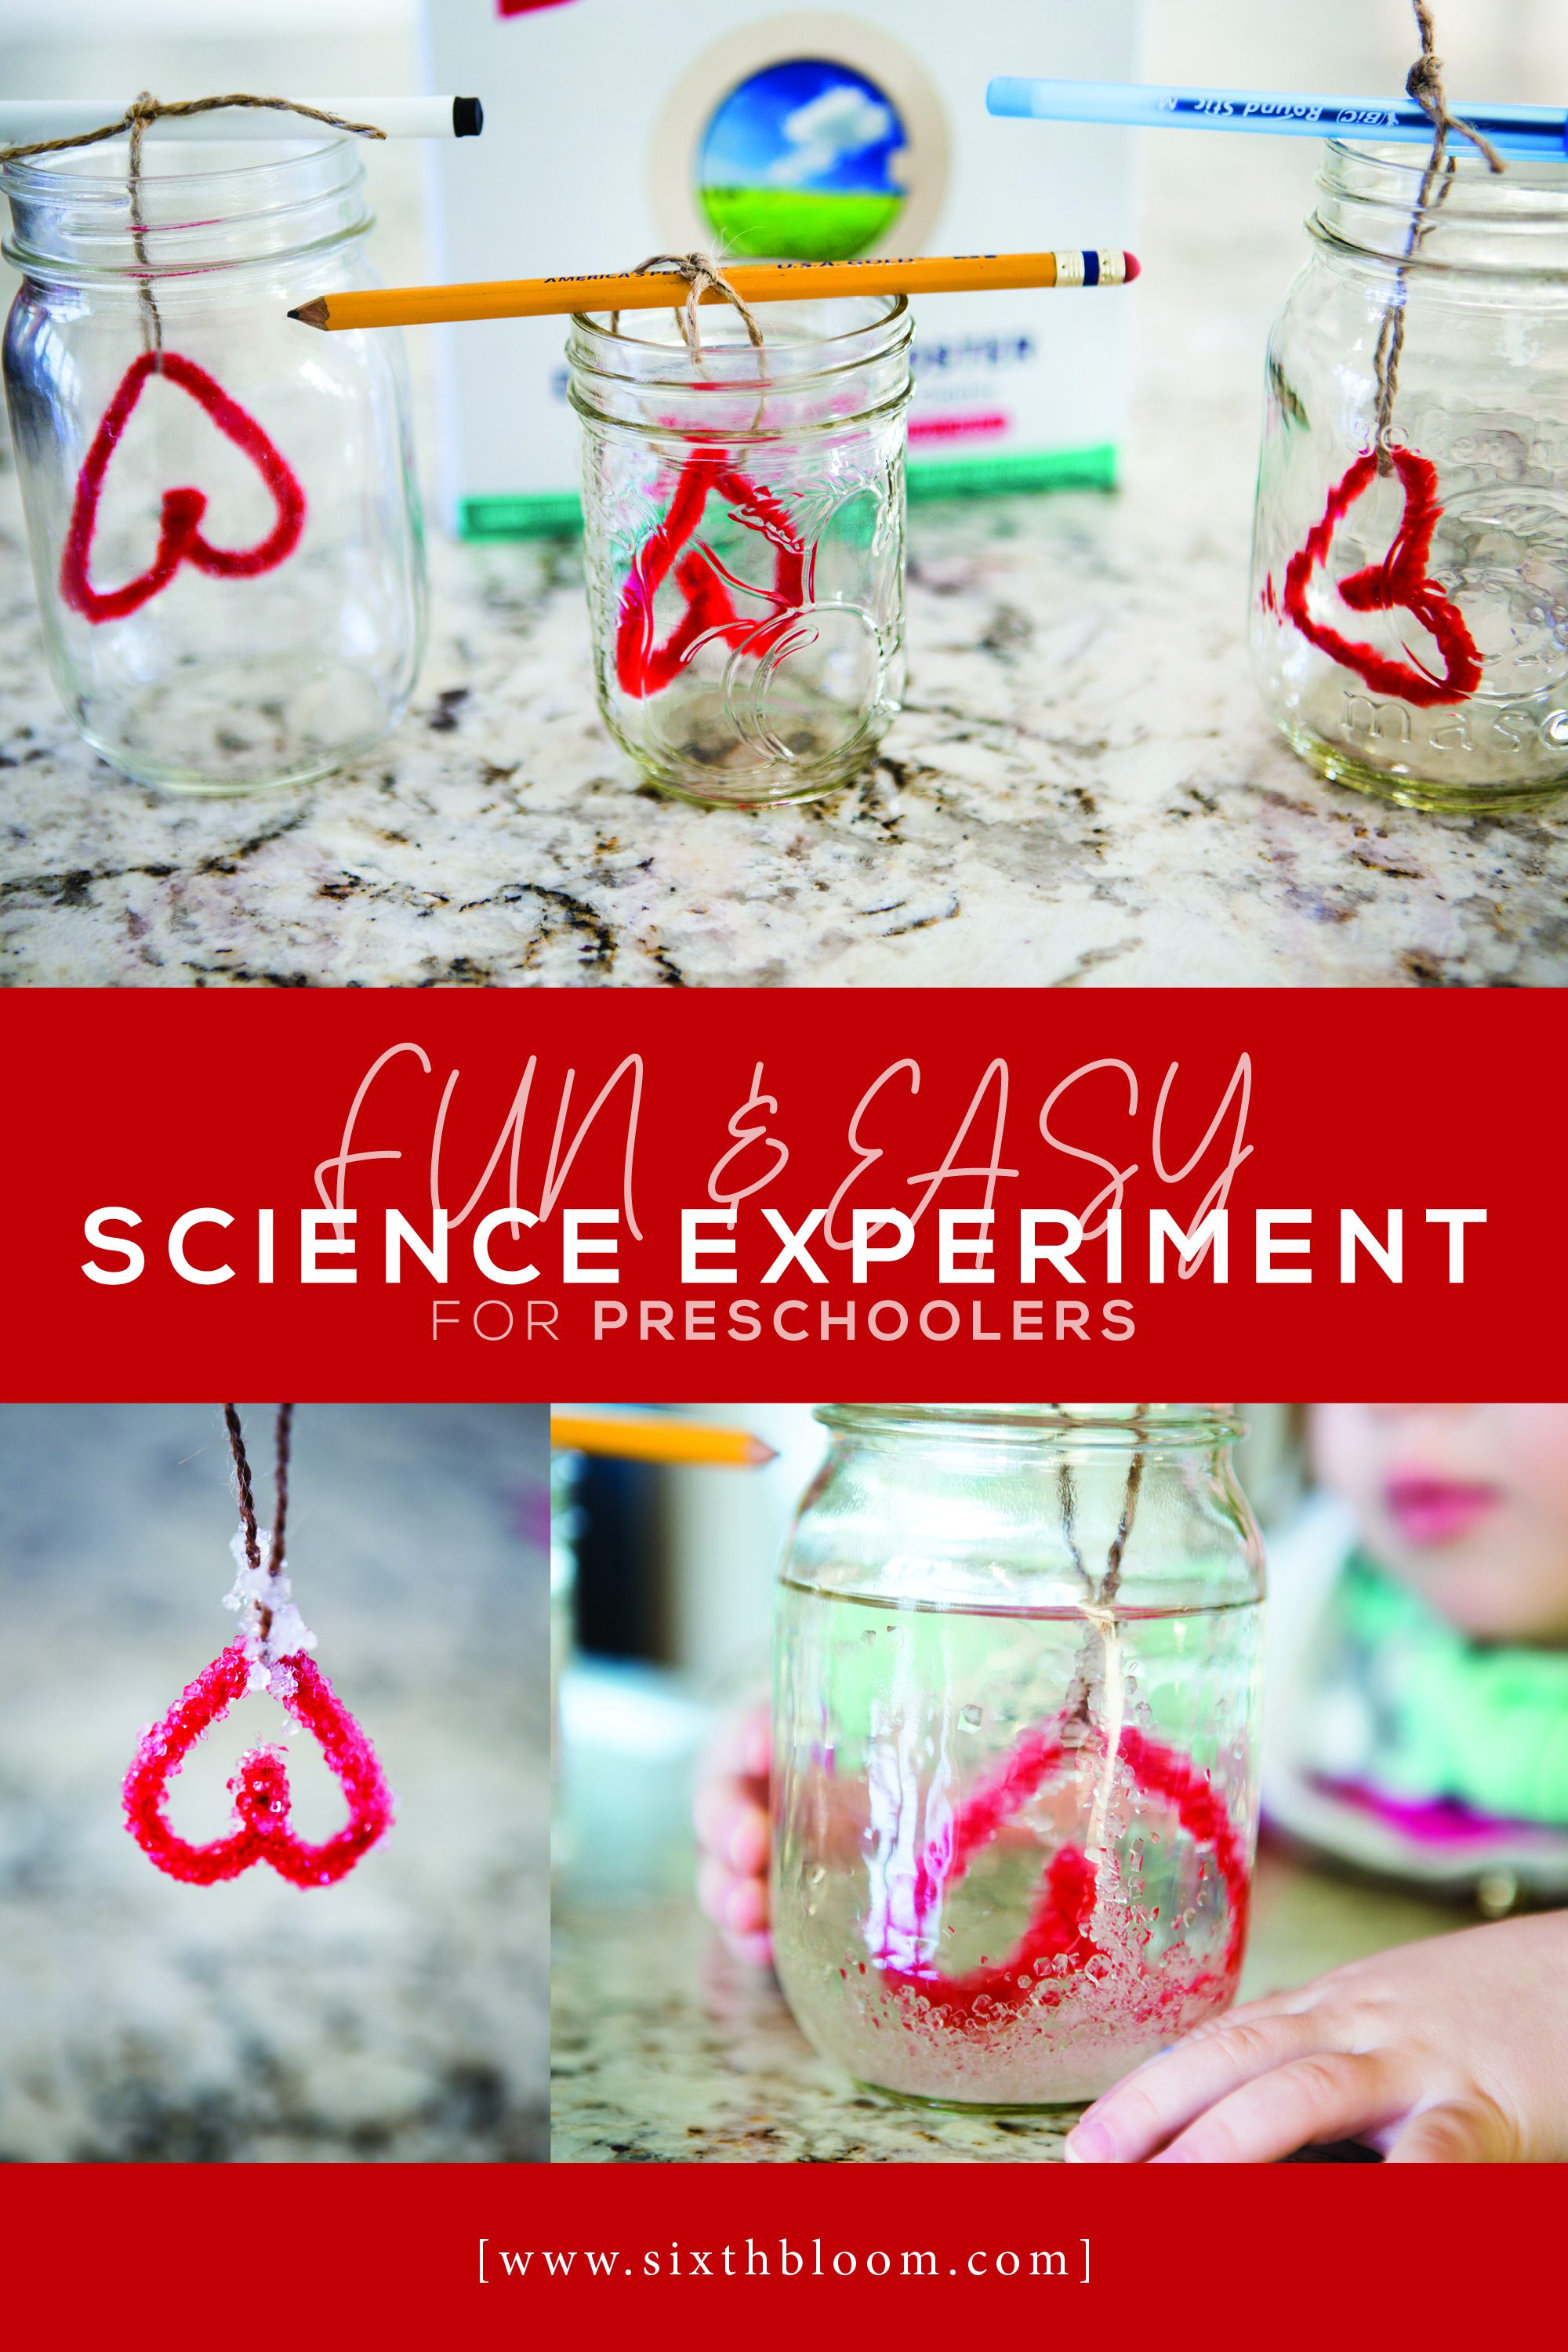 Fun & Easy Science Experiment